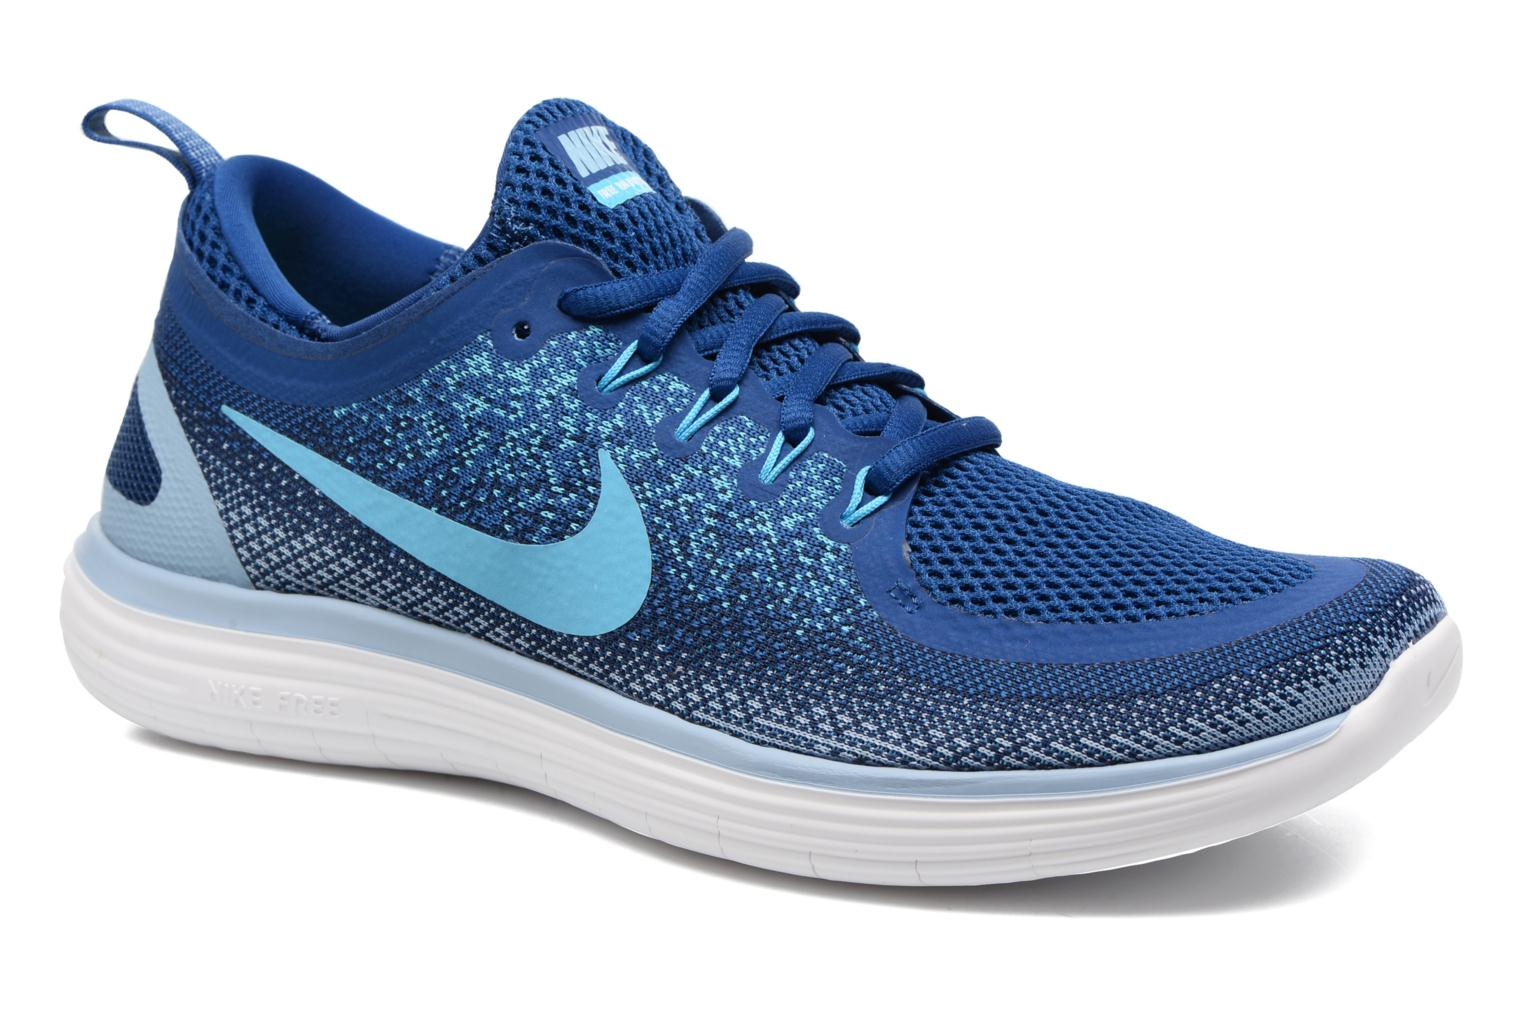 Nike Free Rn Distance 2 Gym Blue/Blue Fury-Binary Blue